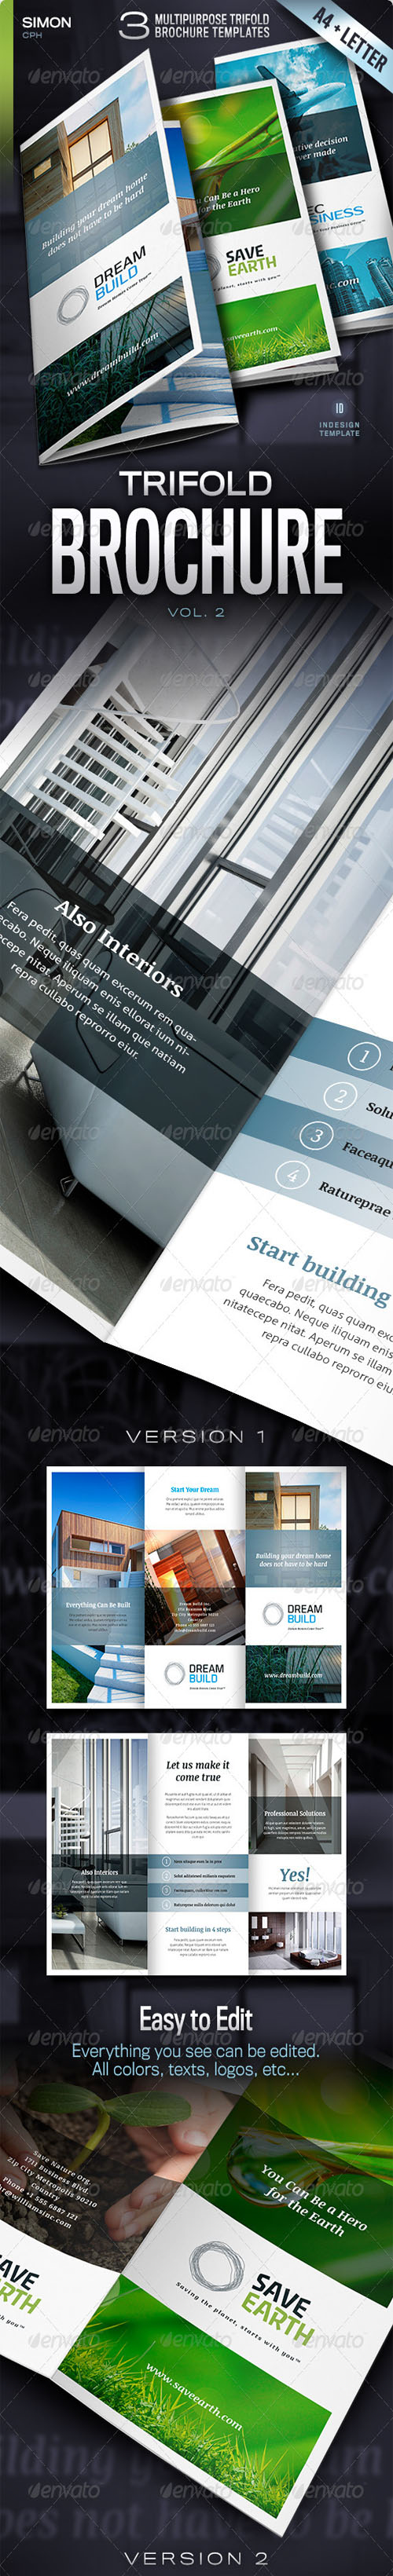 GraphicRiver - Trifold Brochure Vol. 2